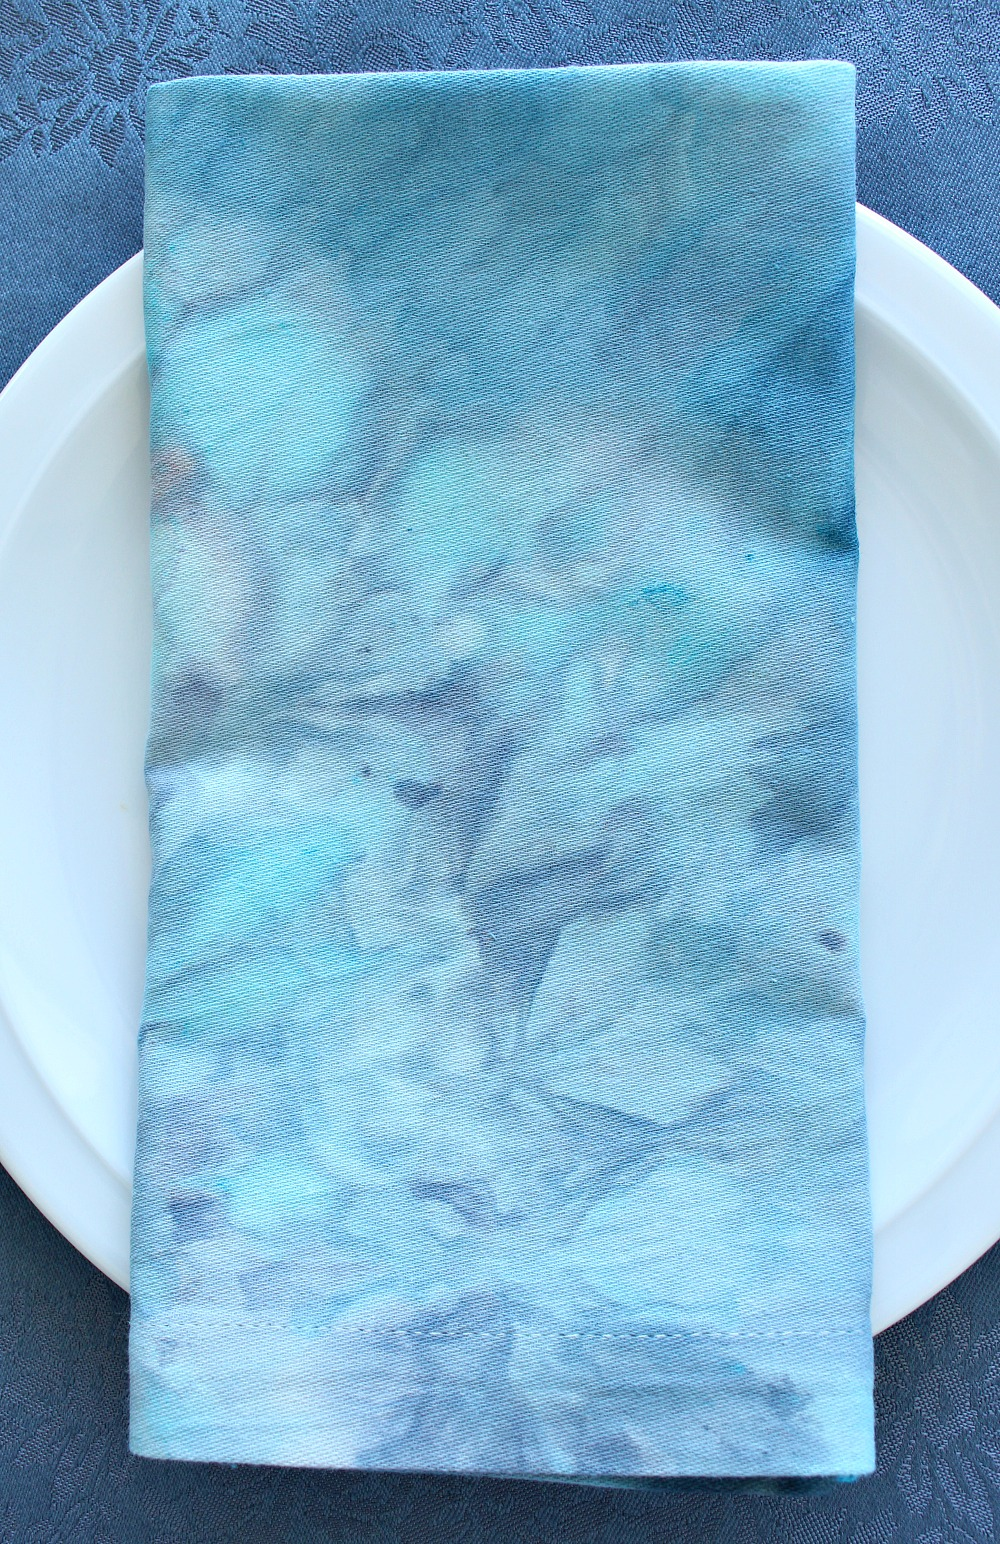 Turquoise and Grey Ice Dyed Fabric Napkin by @danslelakehouse